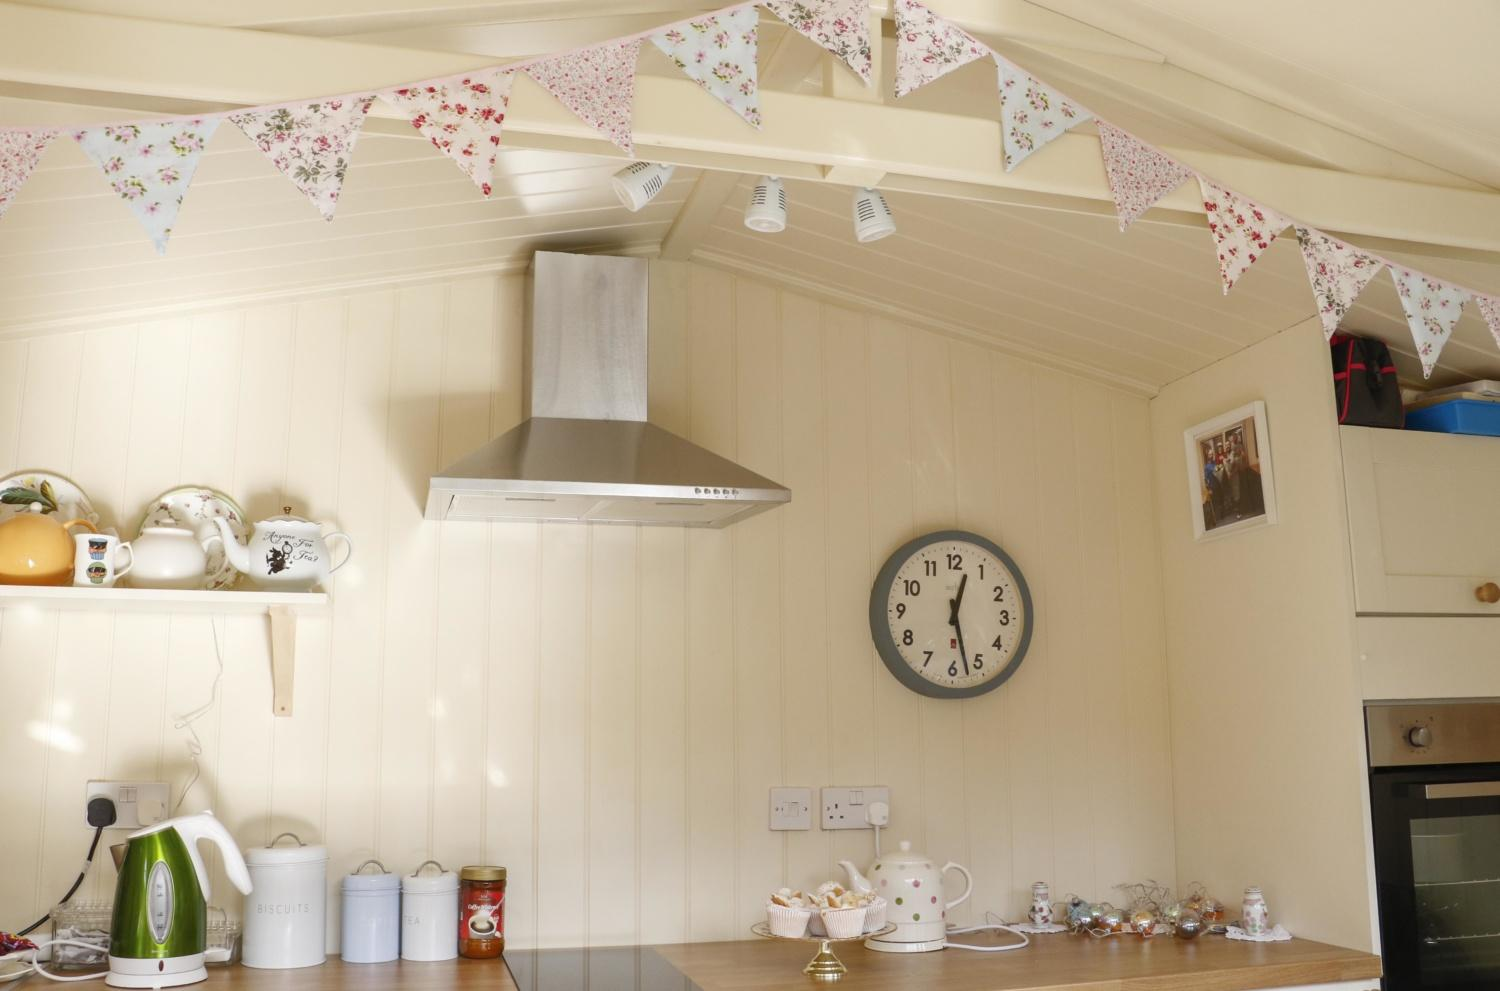 ITV's Love Your Garden visited Kath Ryan to give her the garden makeover of her dreams! The Studio Apex by Malvern Garden Buildings has a fitted kitchen perfect for Kath to bake for her 'boys'